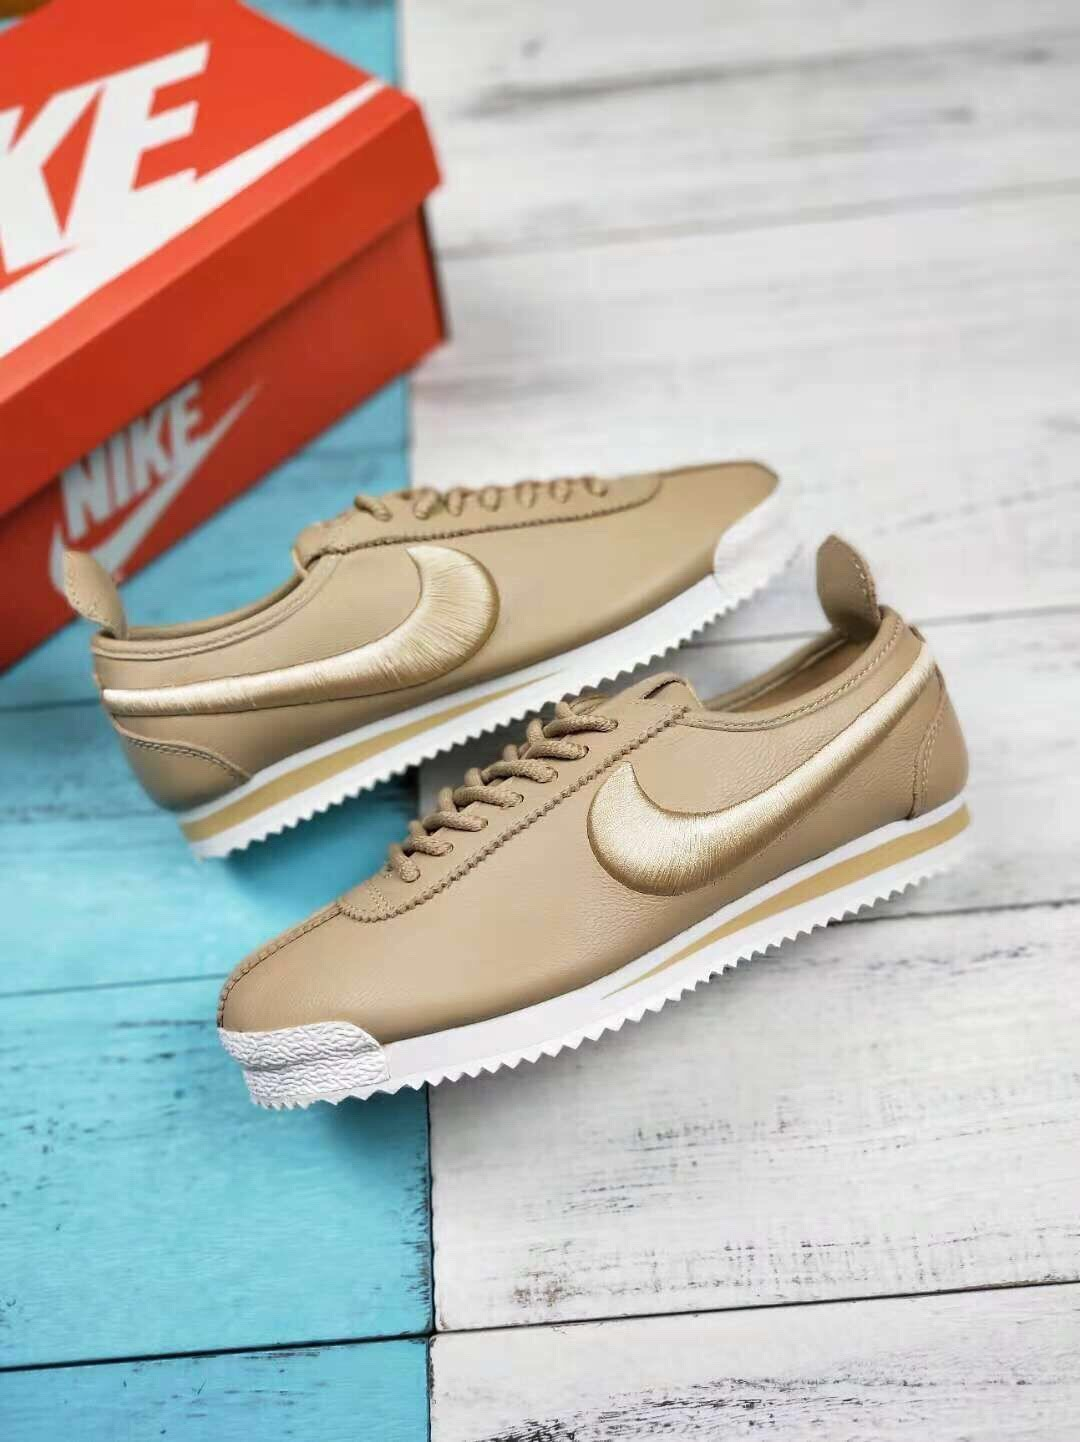 Nike x Cortez'72 Agam Yellow Leather Upper Vamp Sports Shoes